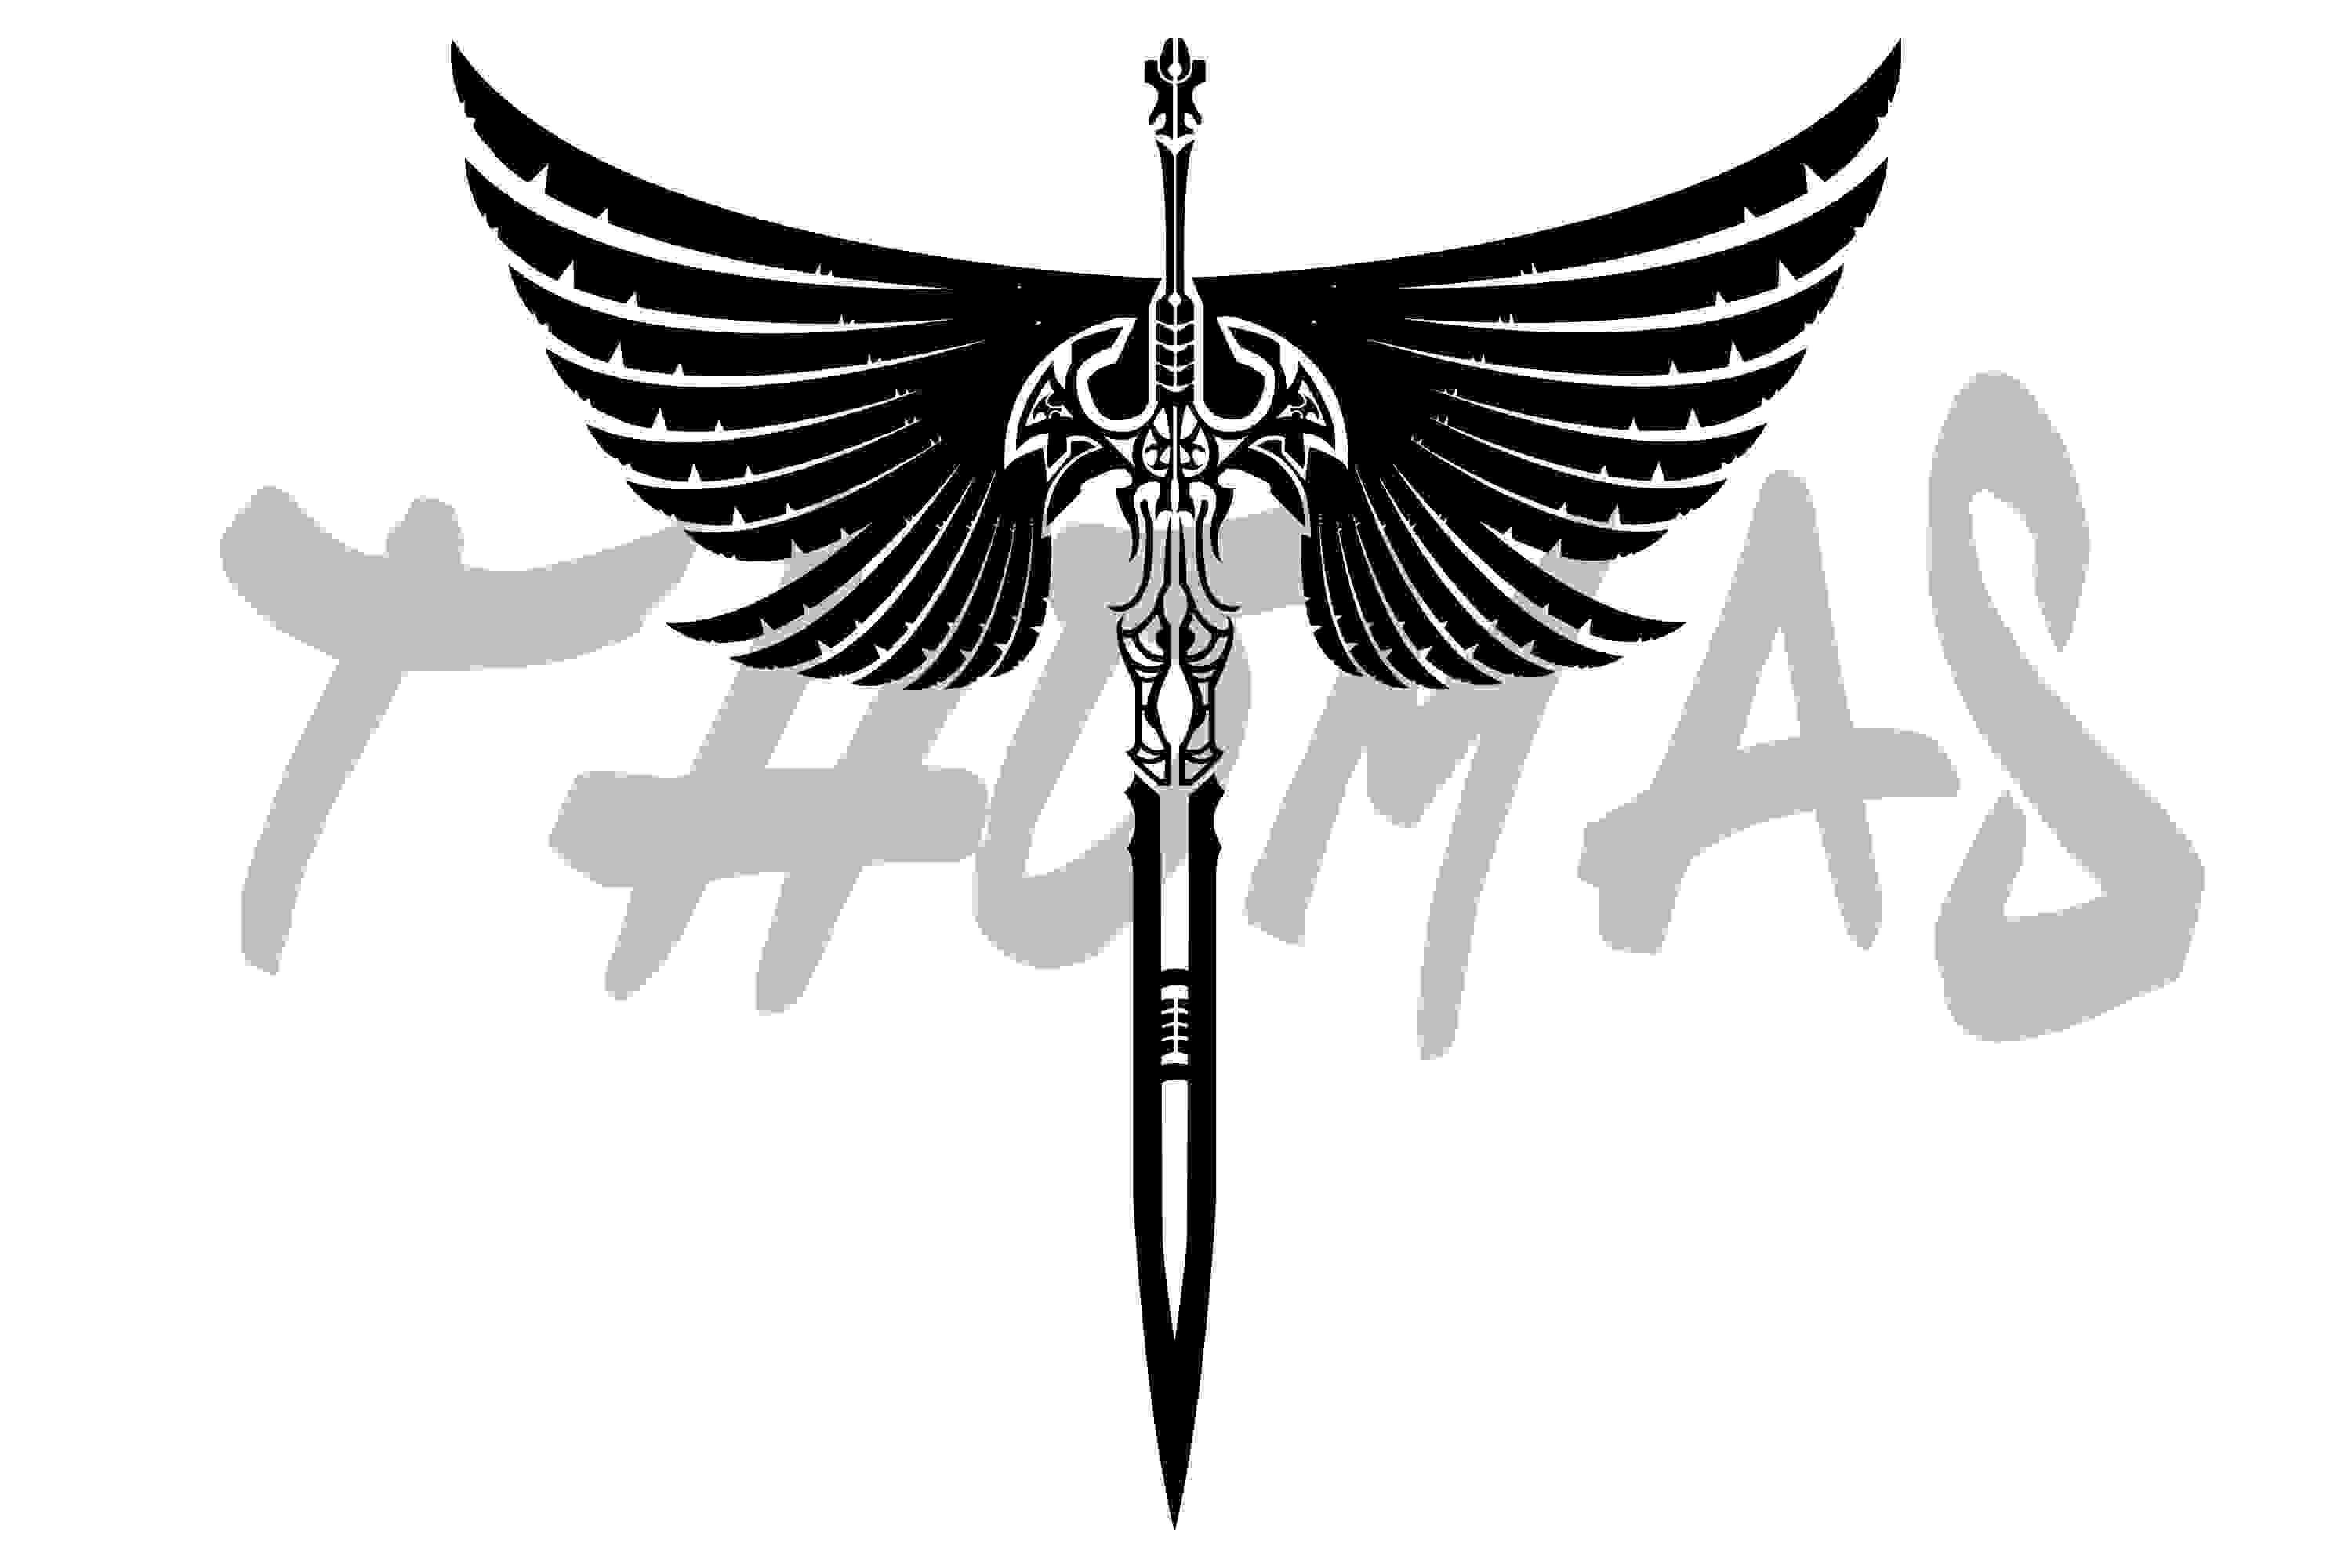 Stylish Sword And Wings Tattoo Design